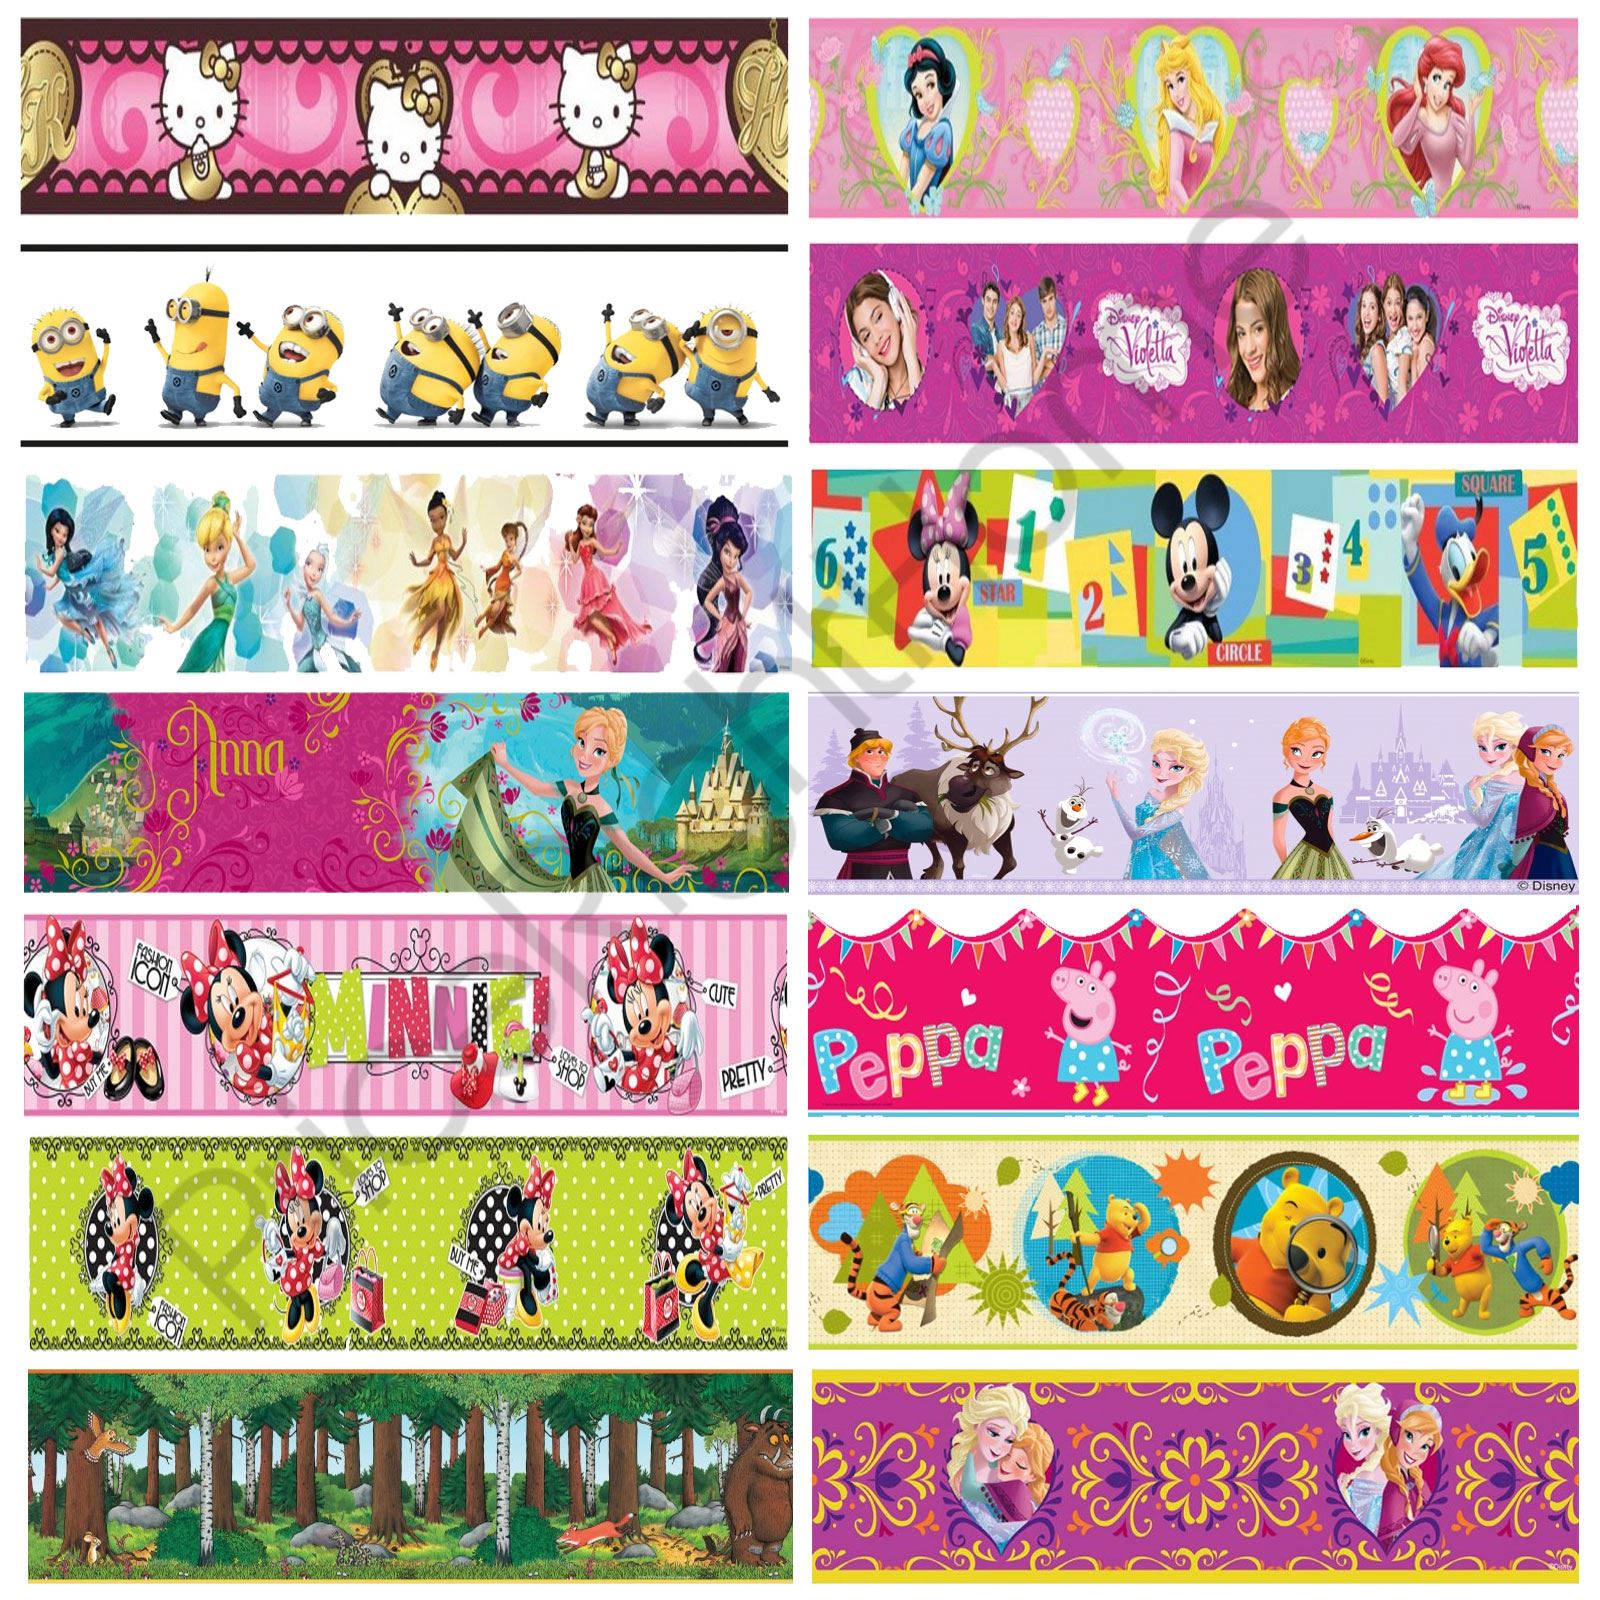 Details About Girls Character Self Adhesive Wallpaper Borders Disney Frozen Minnie Pooh More